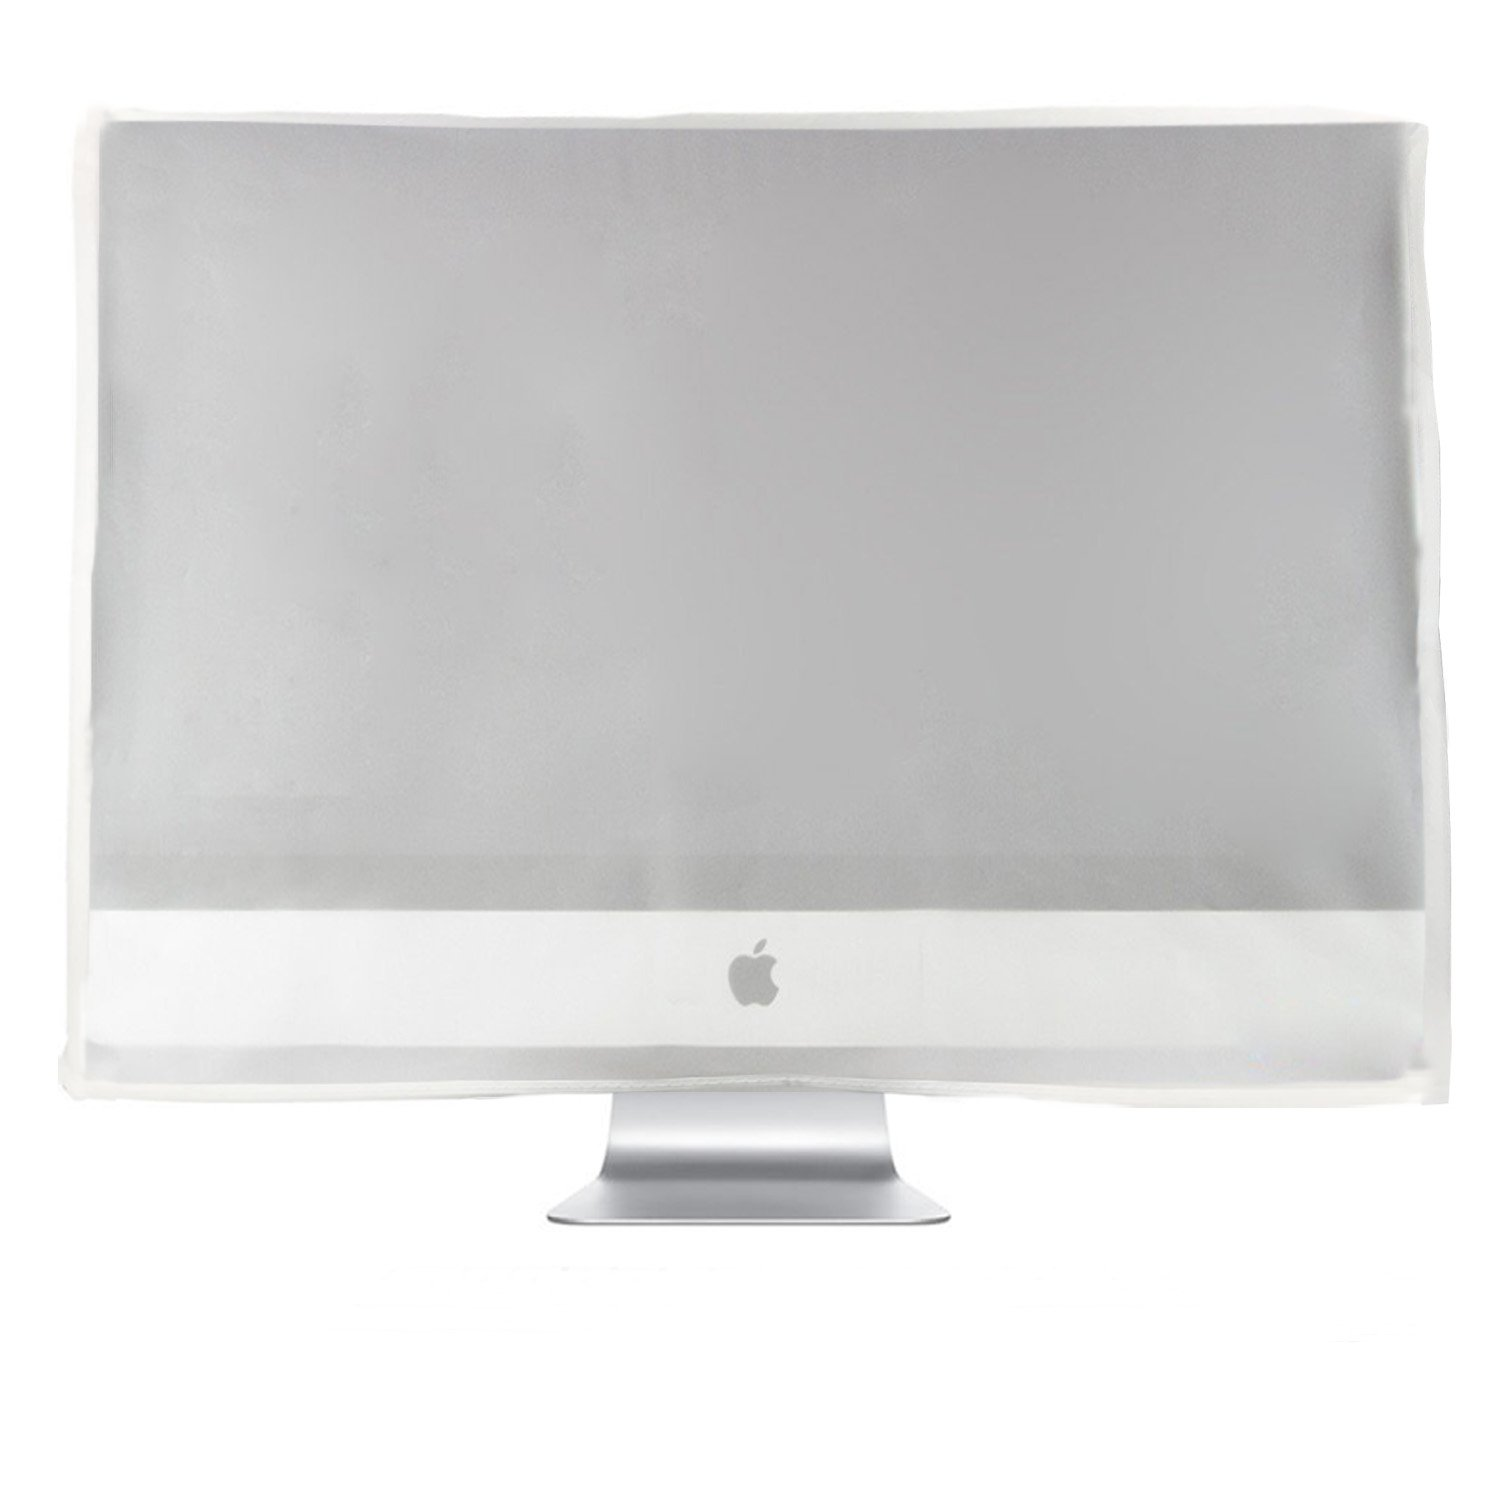 """SZBRO Computer Dust Cover, Protective Dust Screen Cover Sleeve, Compatible with 24"""" iMac 24W x20H x3(Top)/8(Bottom)"""